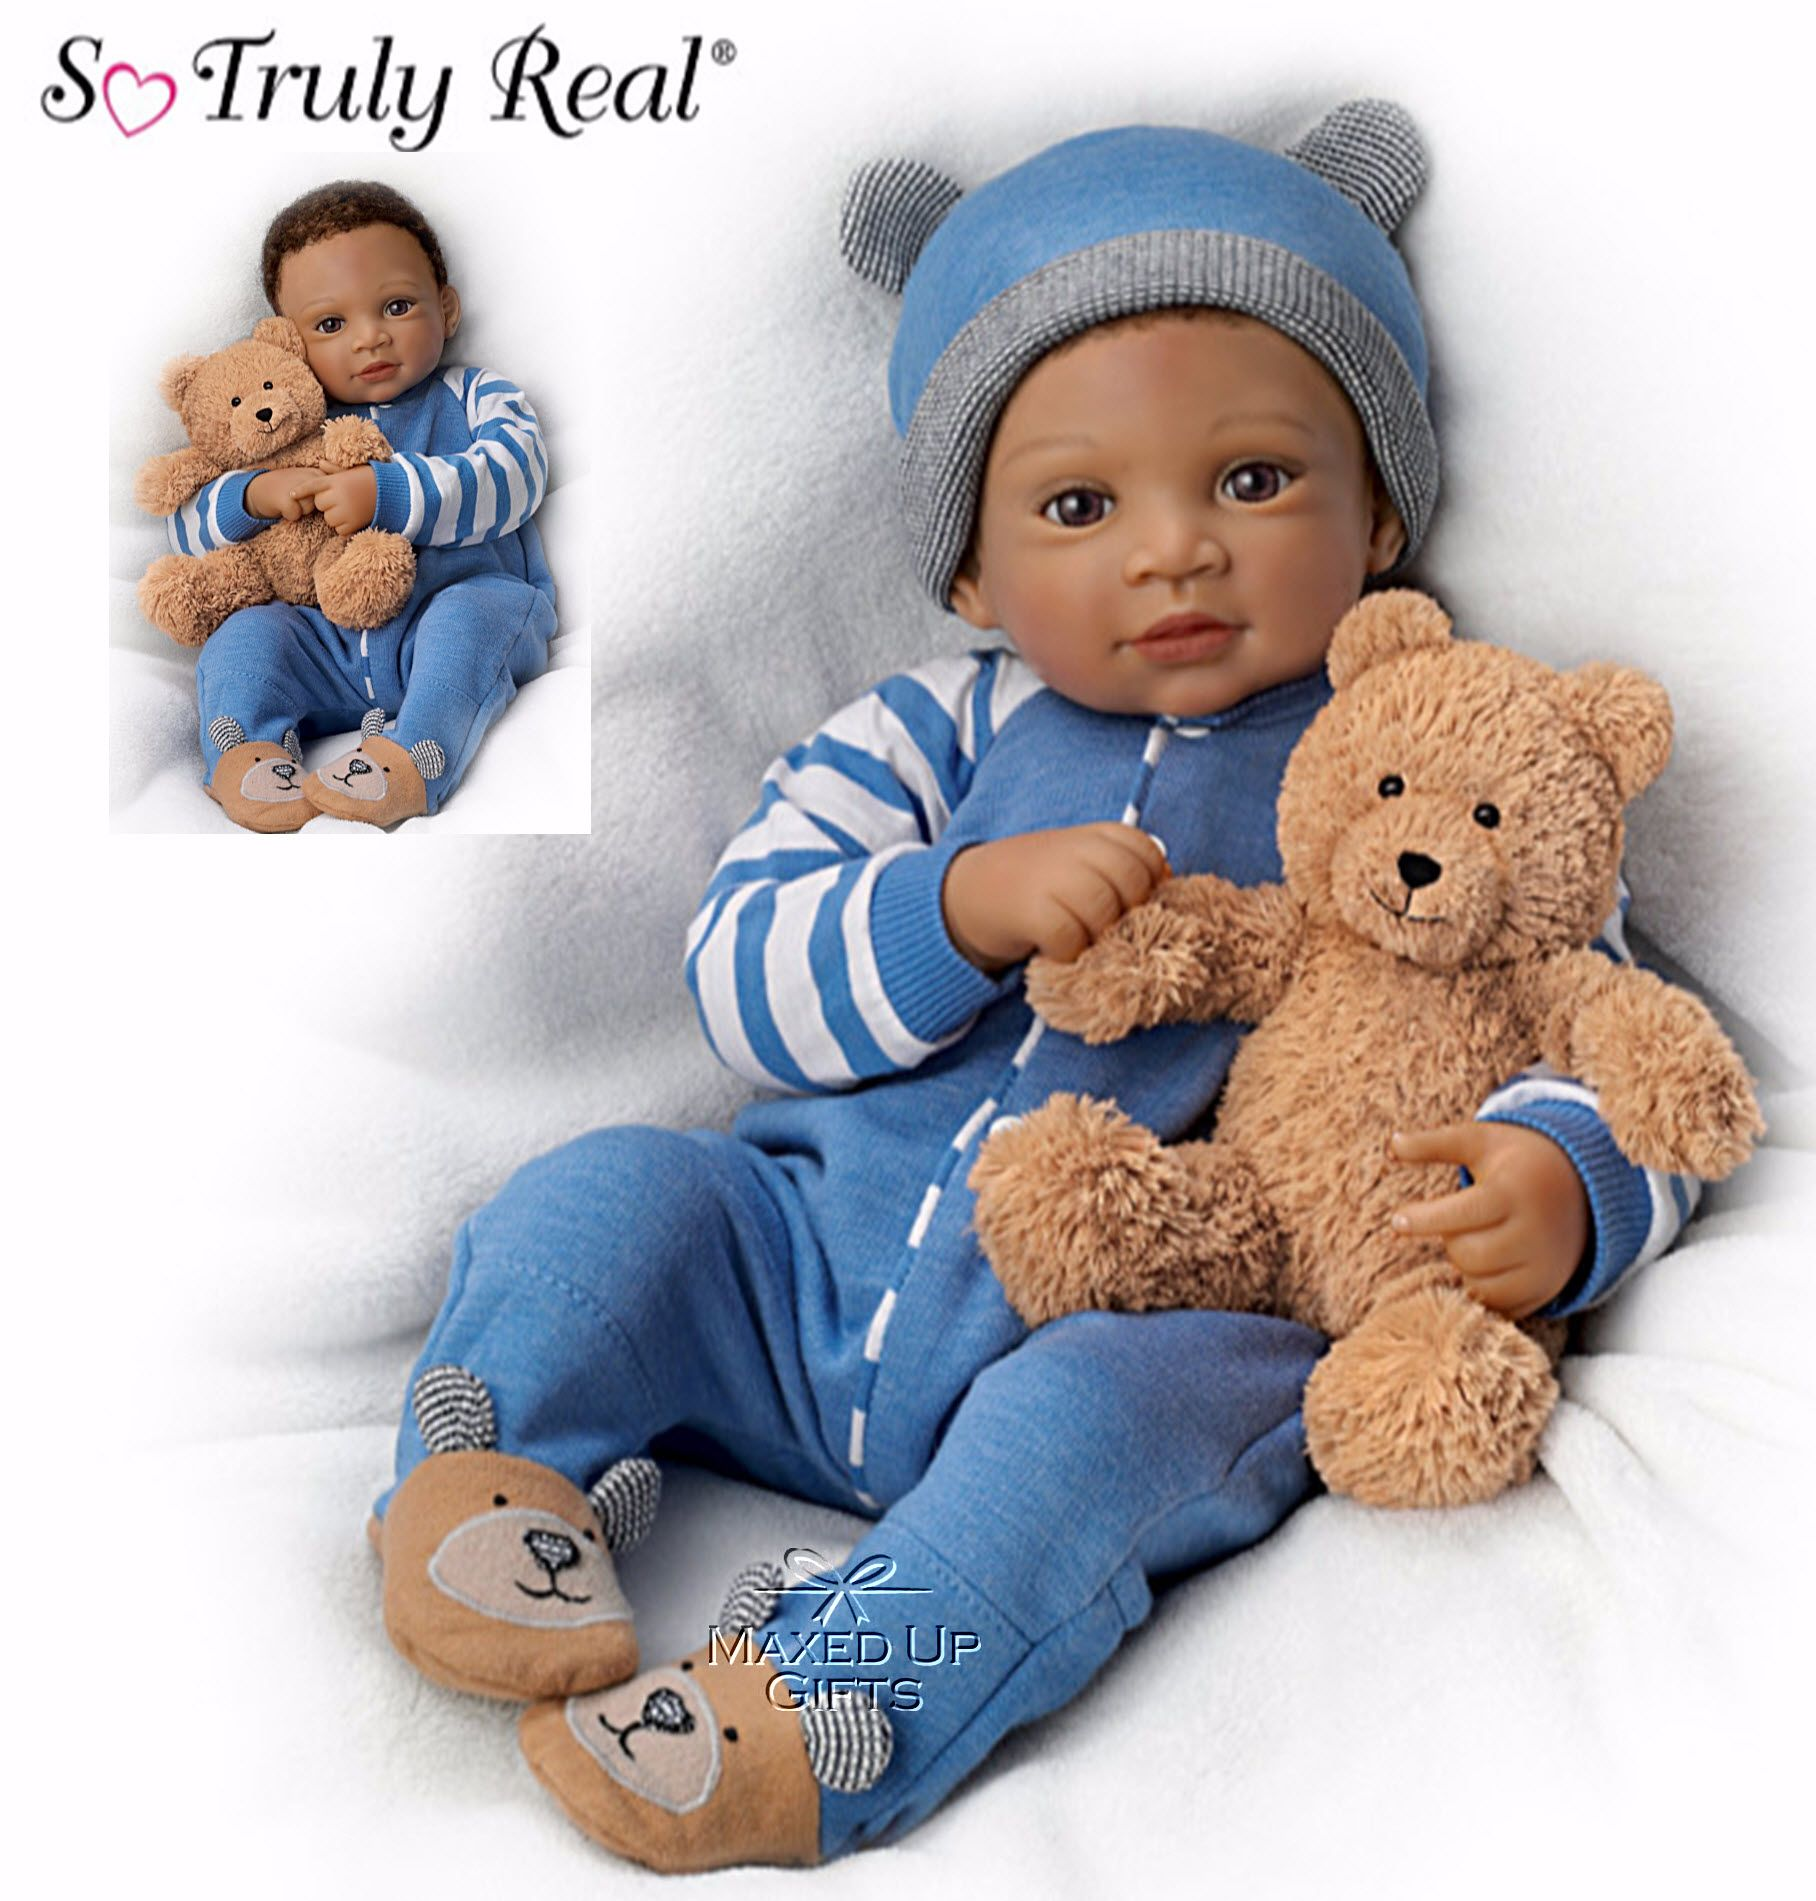 Calvin Poseable Doll With Teddy Bear Real baby dolls